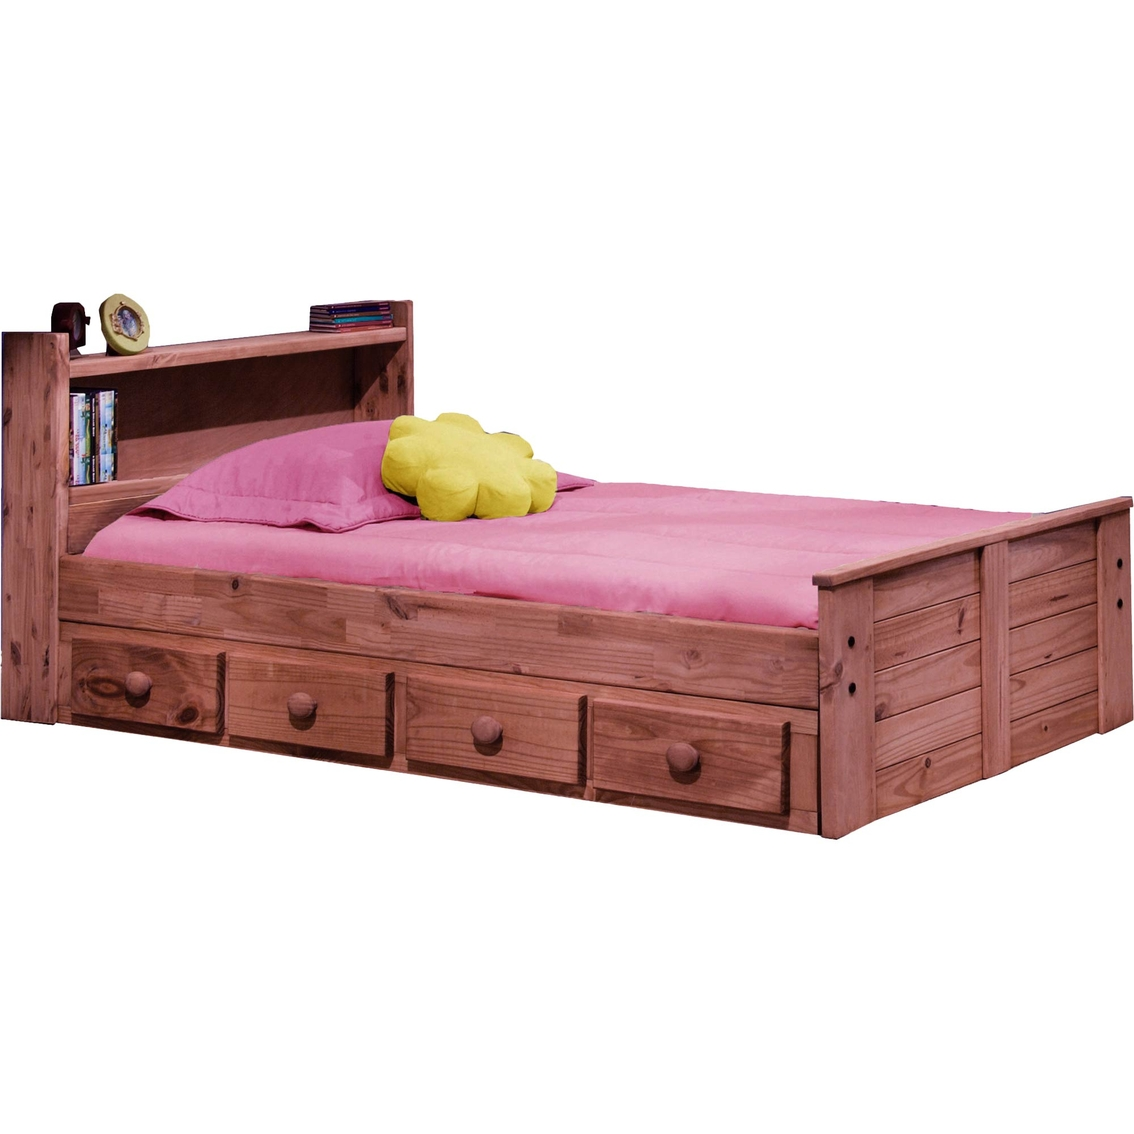 Chelsea Home Furniture Twin Bed With Bookcase Headboard And